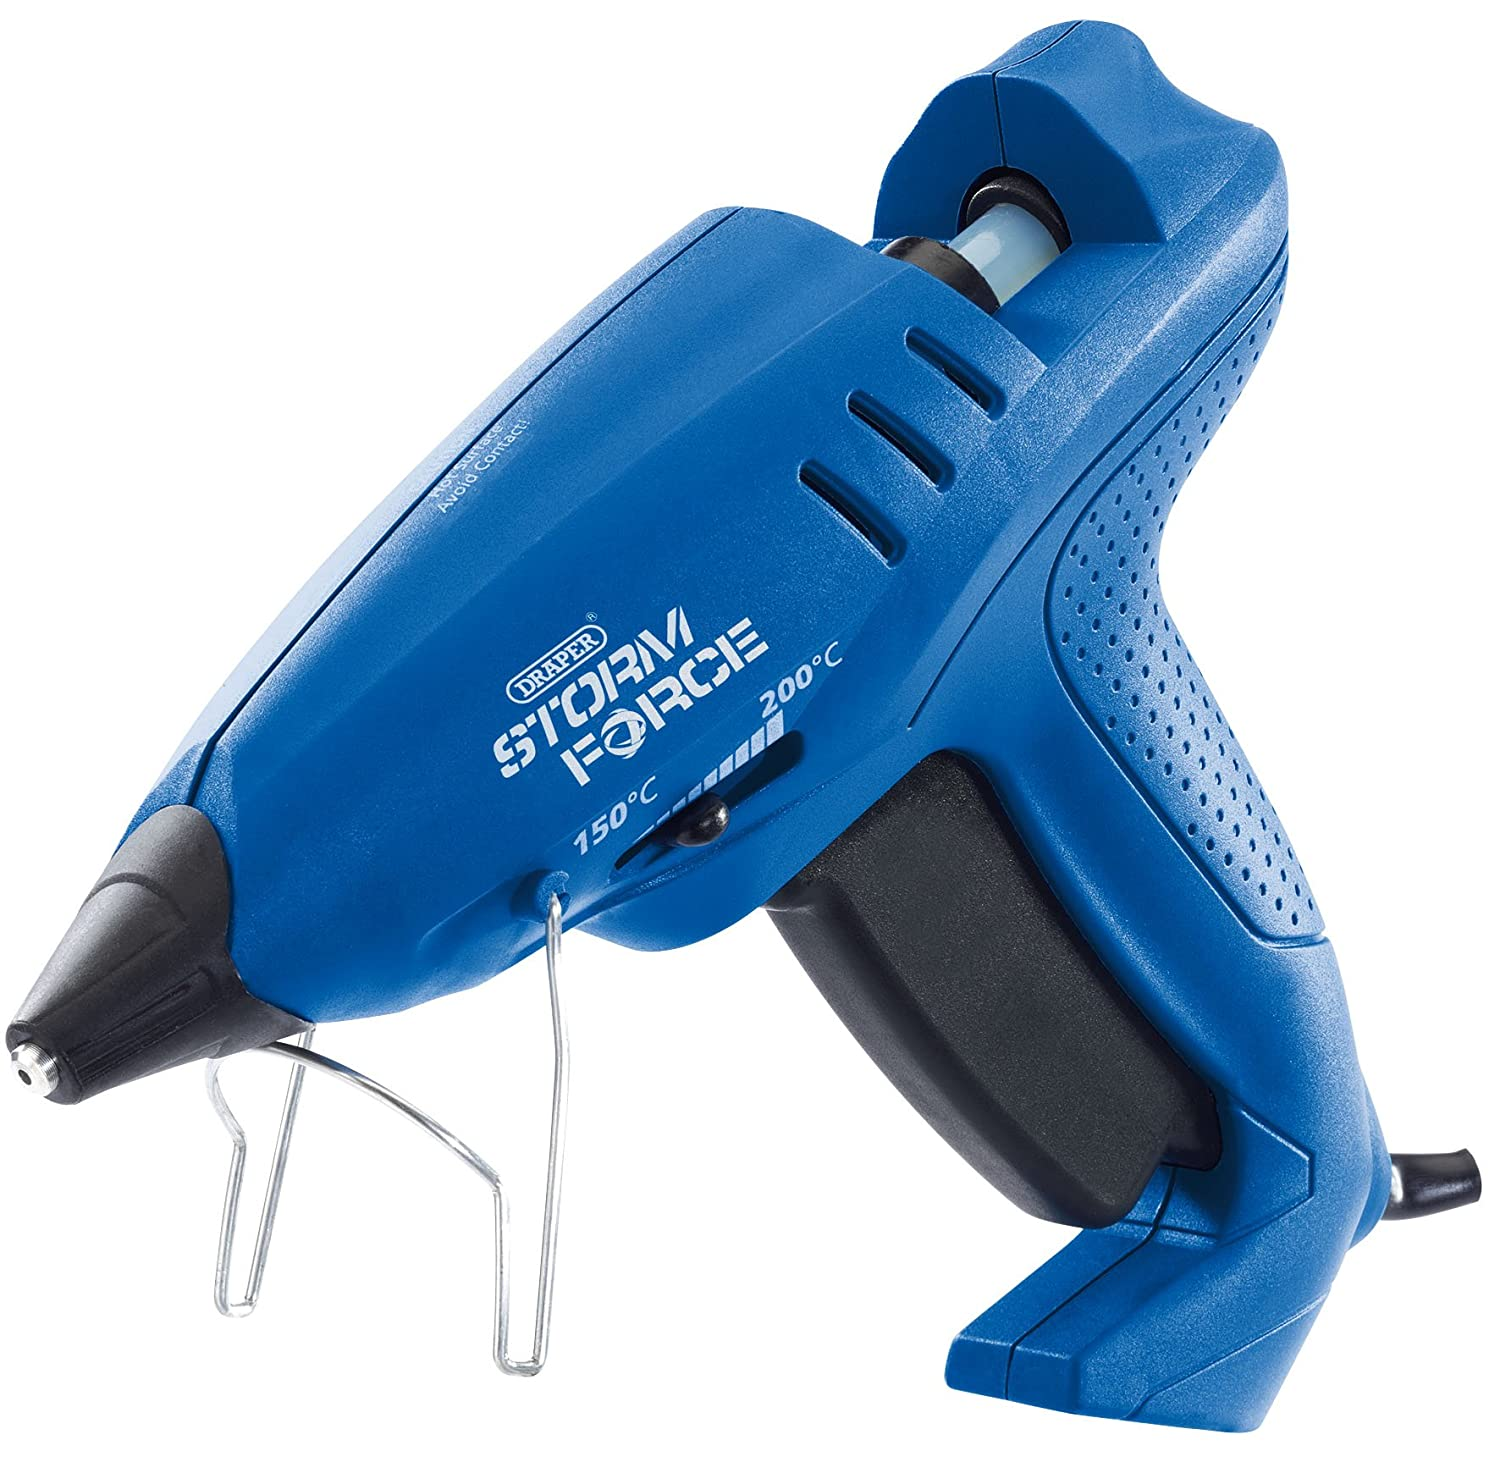 Draper 83661 Storm Force Variable Heiß Klebepistole mit 6 Klebestifte, 600 W, 400 V, blau